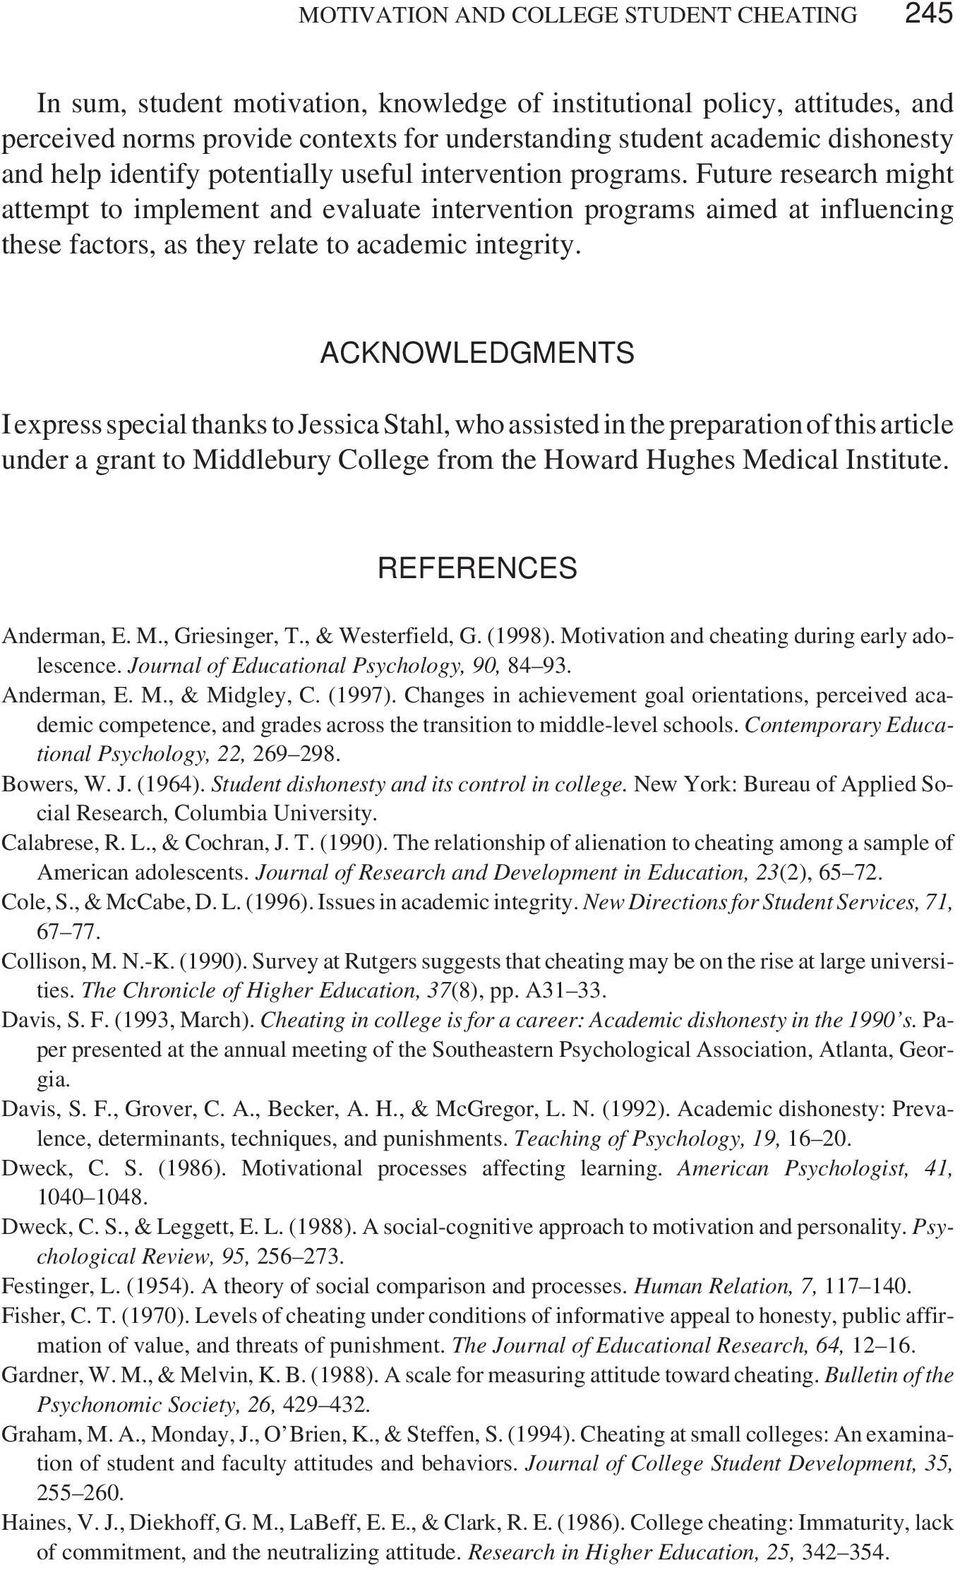 student motivation research articles